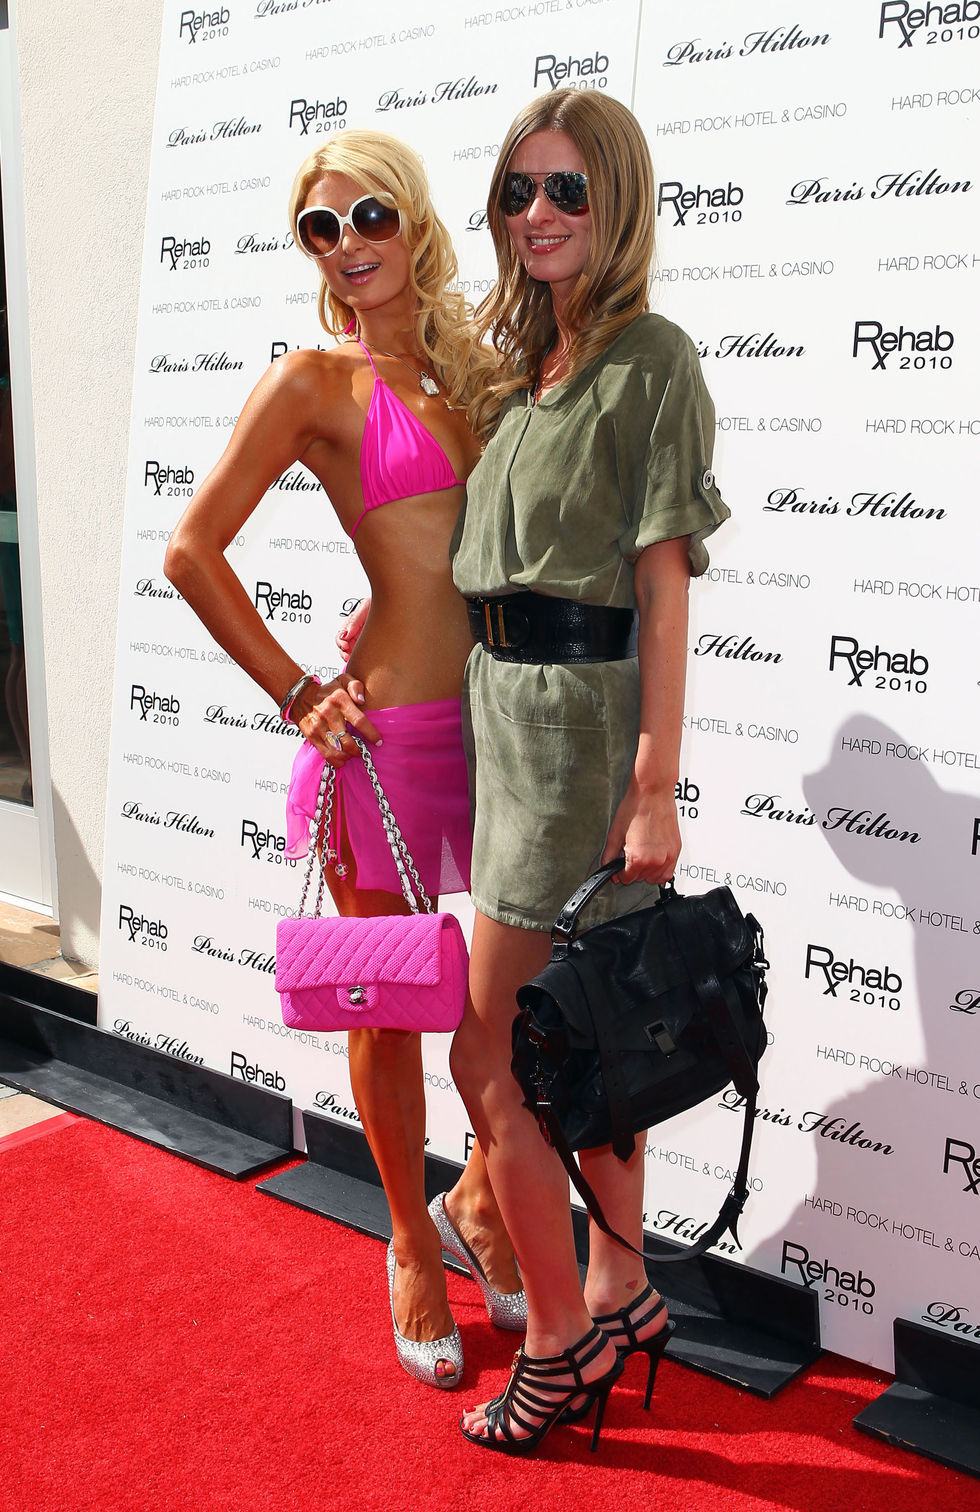 Nicky Hilton 2010 : nicky-hilton-leggy-candids-at-the-ultimate-daytime-pool-party-in-las-vegas-01